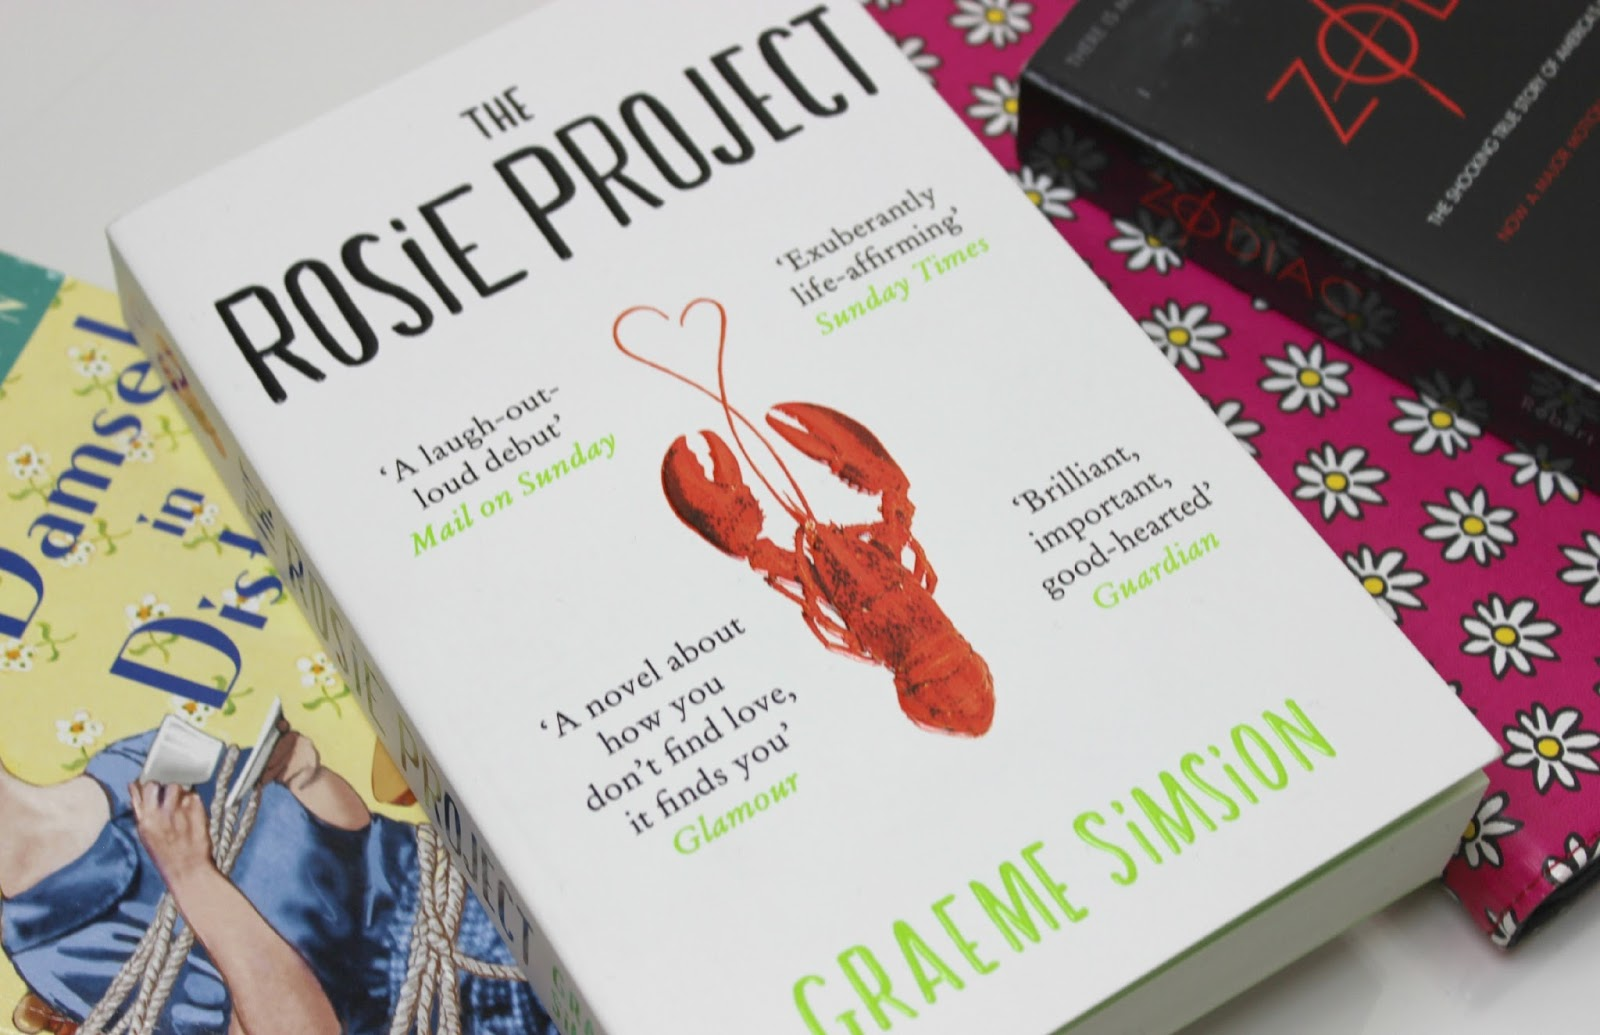 A picture of The Rosie Project by Graeme Simsion